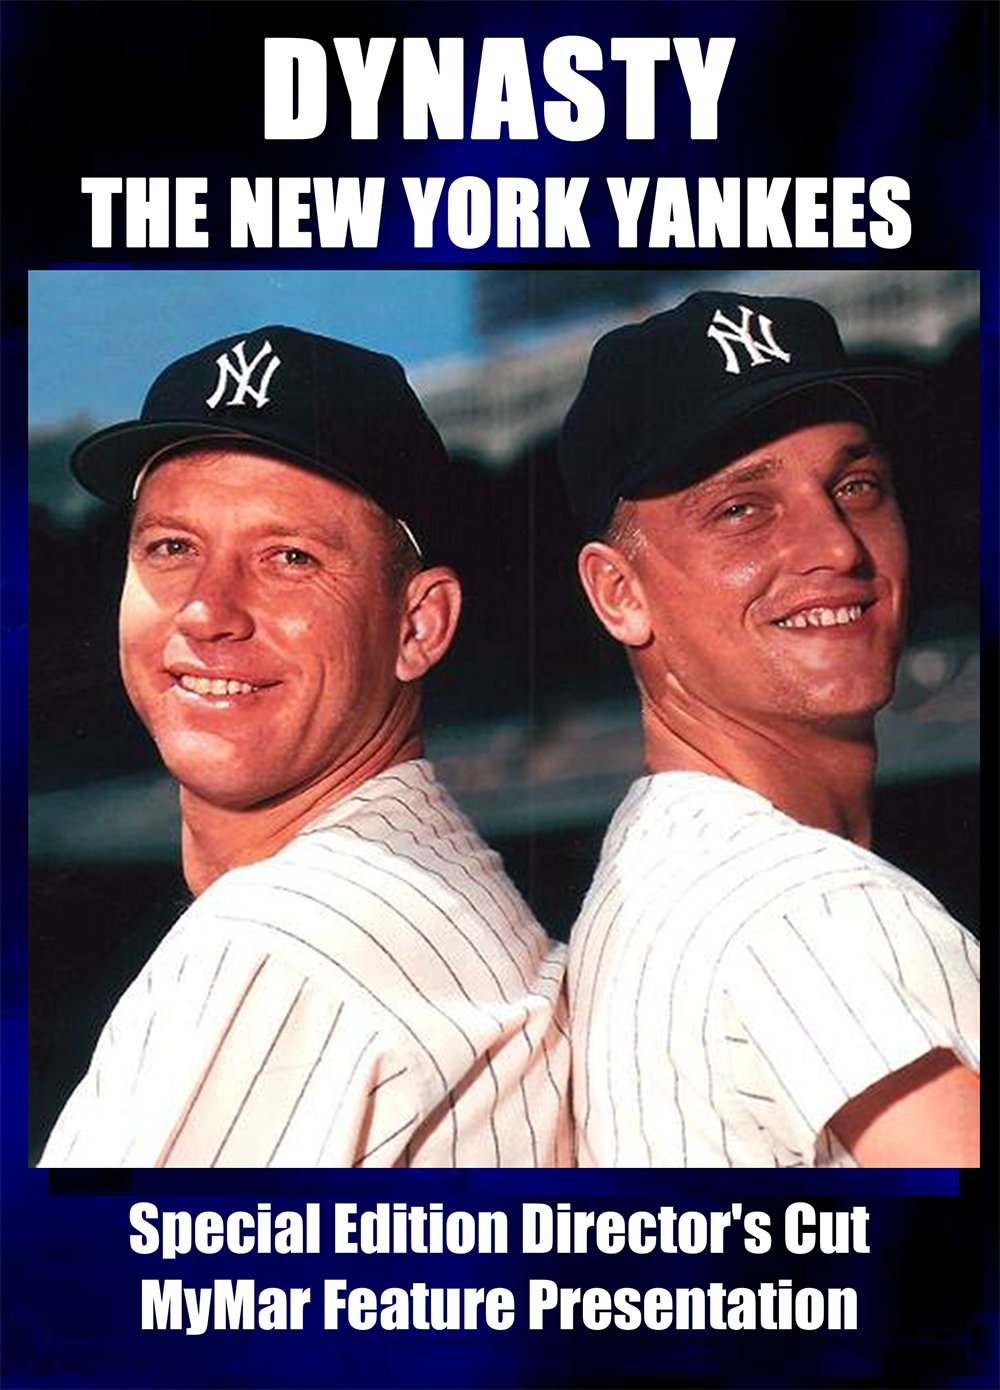 Dynasty: The New York Yankees-SPECIAL EDITION DIRECTOR'S CUT. Available Now.